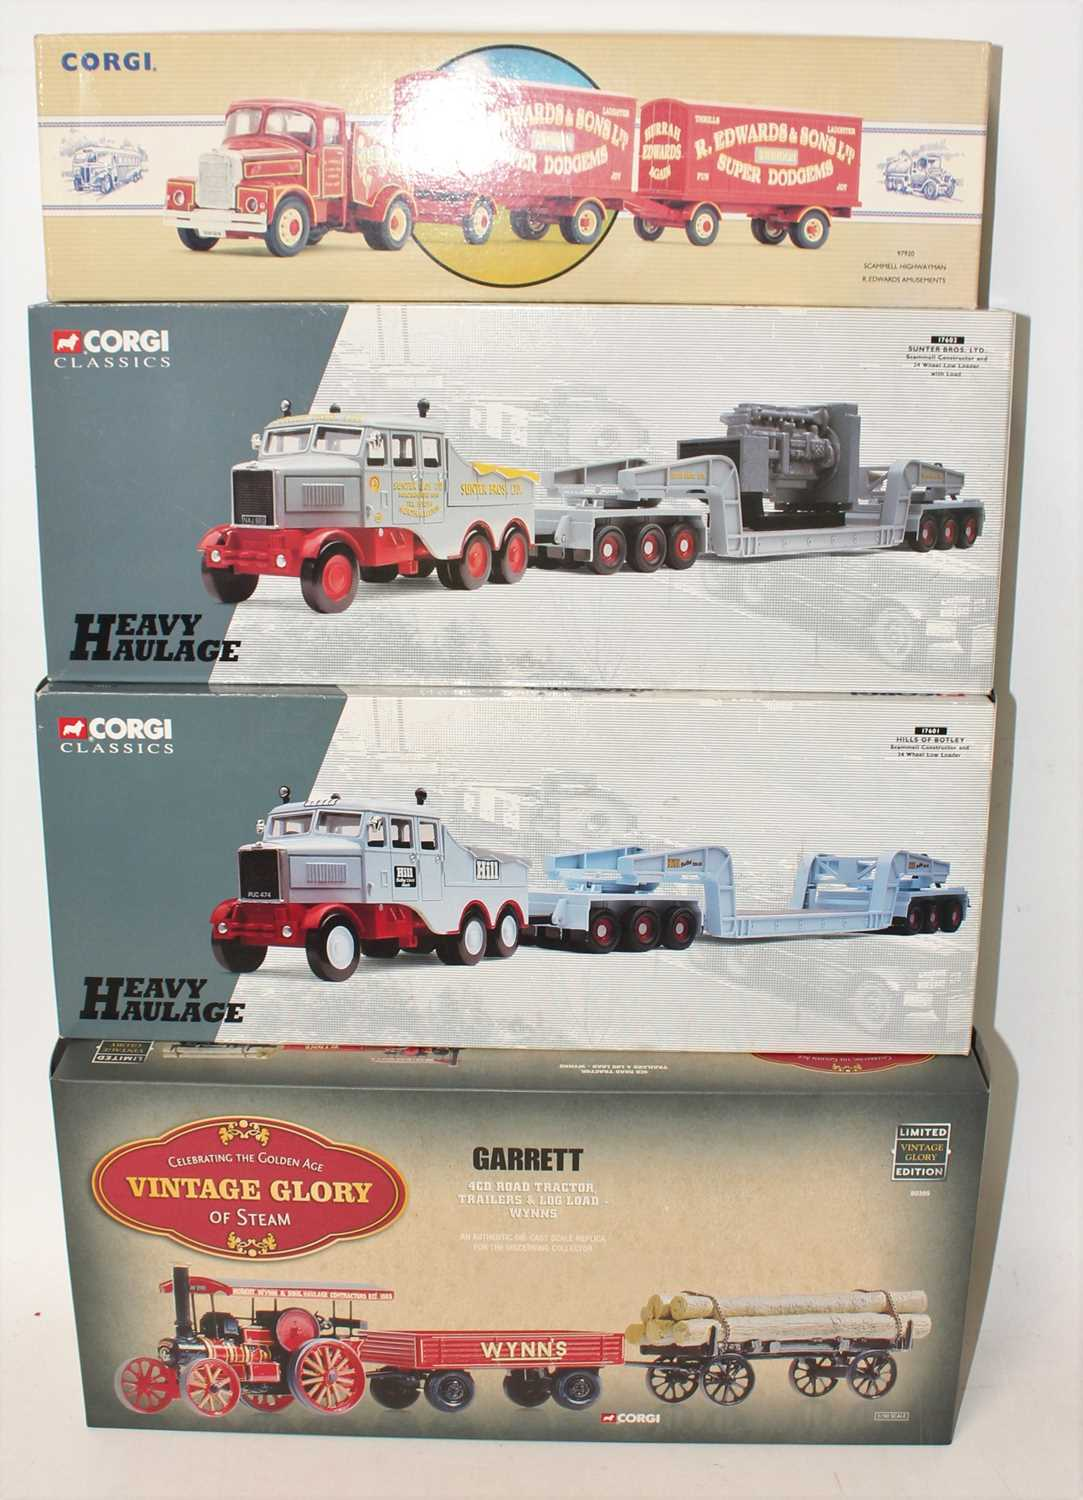 Corgi Classics and Heavy Haulage Boxed Group, 4 examples, to include Edwards Amusements Scammell